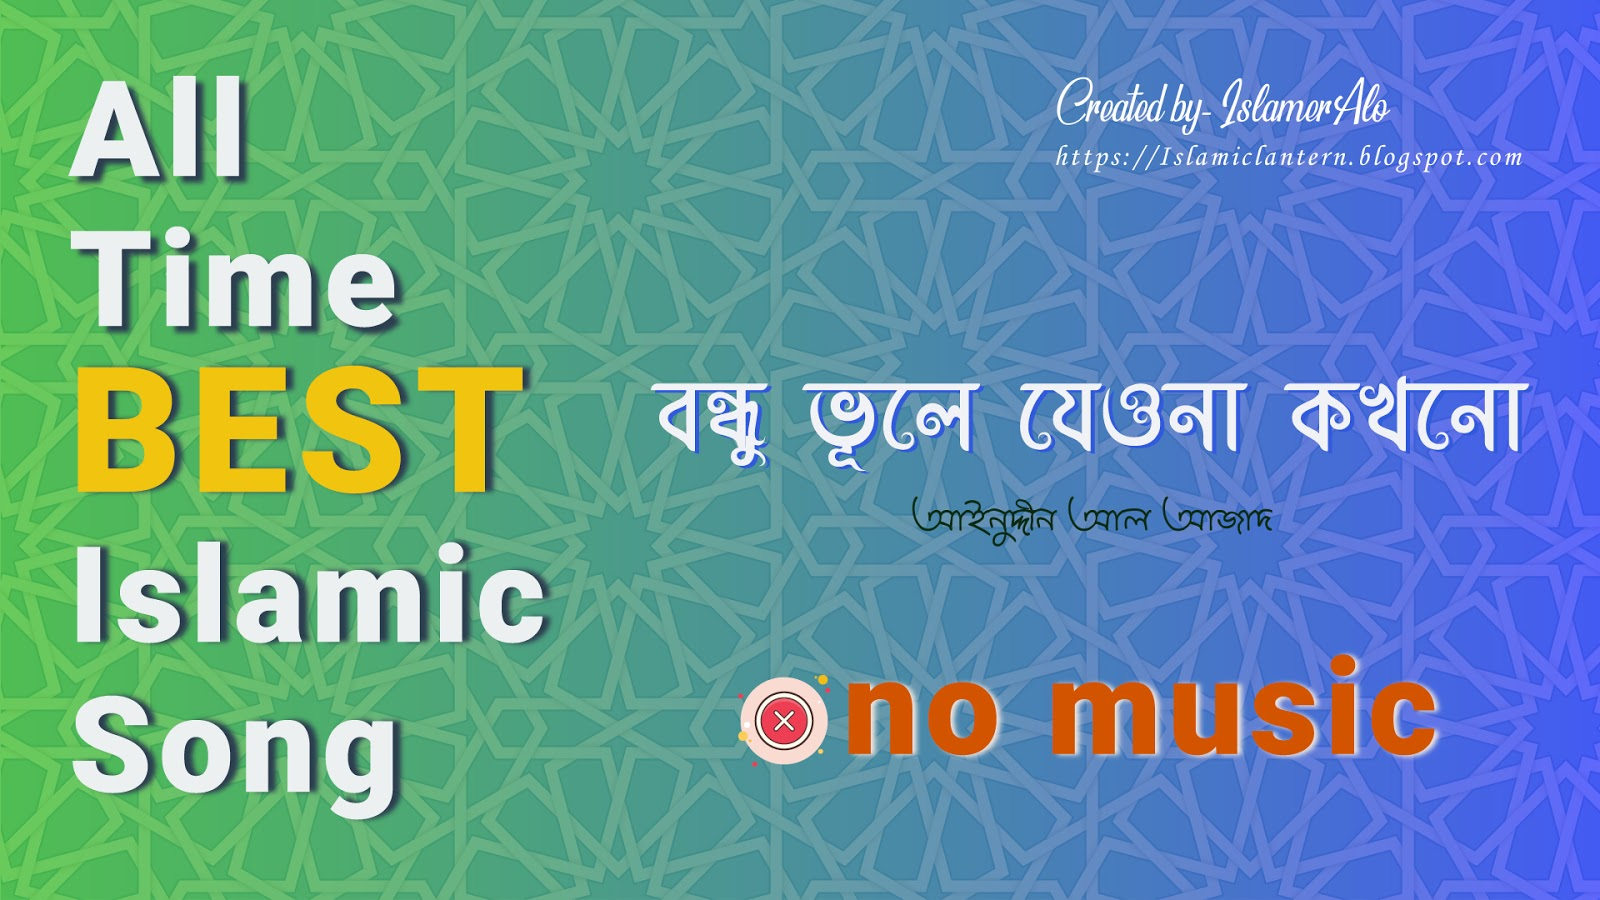 bondu vule jeona kokhono, islamic song, bangla islamic song